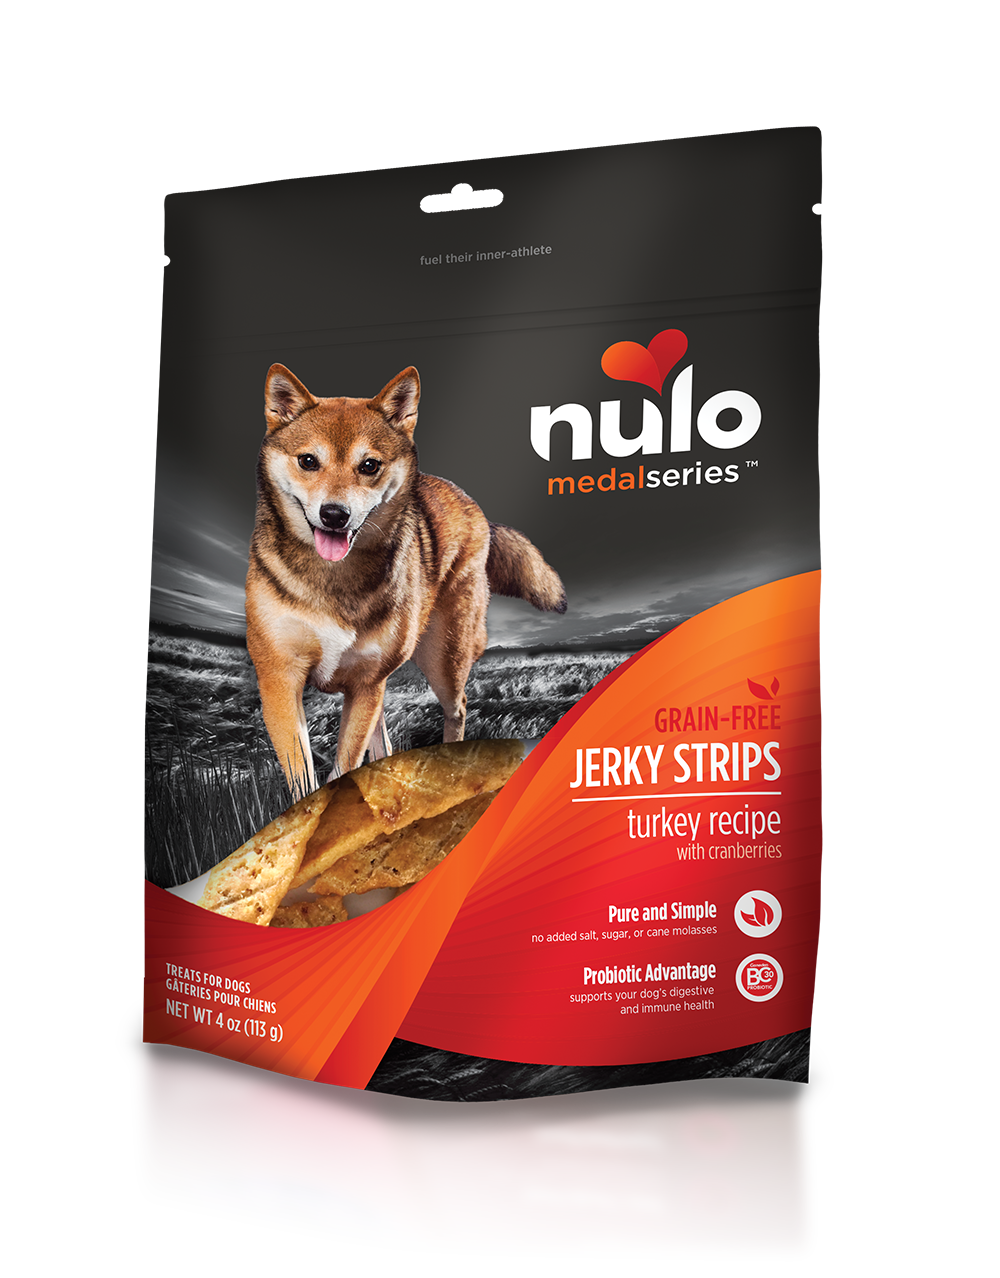 Nulo medalseries jerkytreats turkey